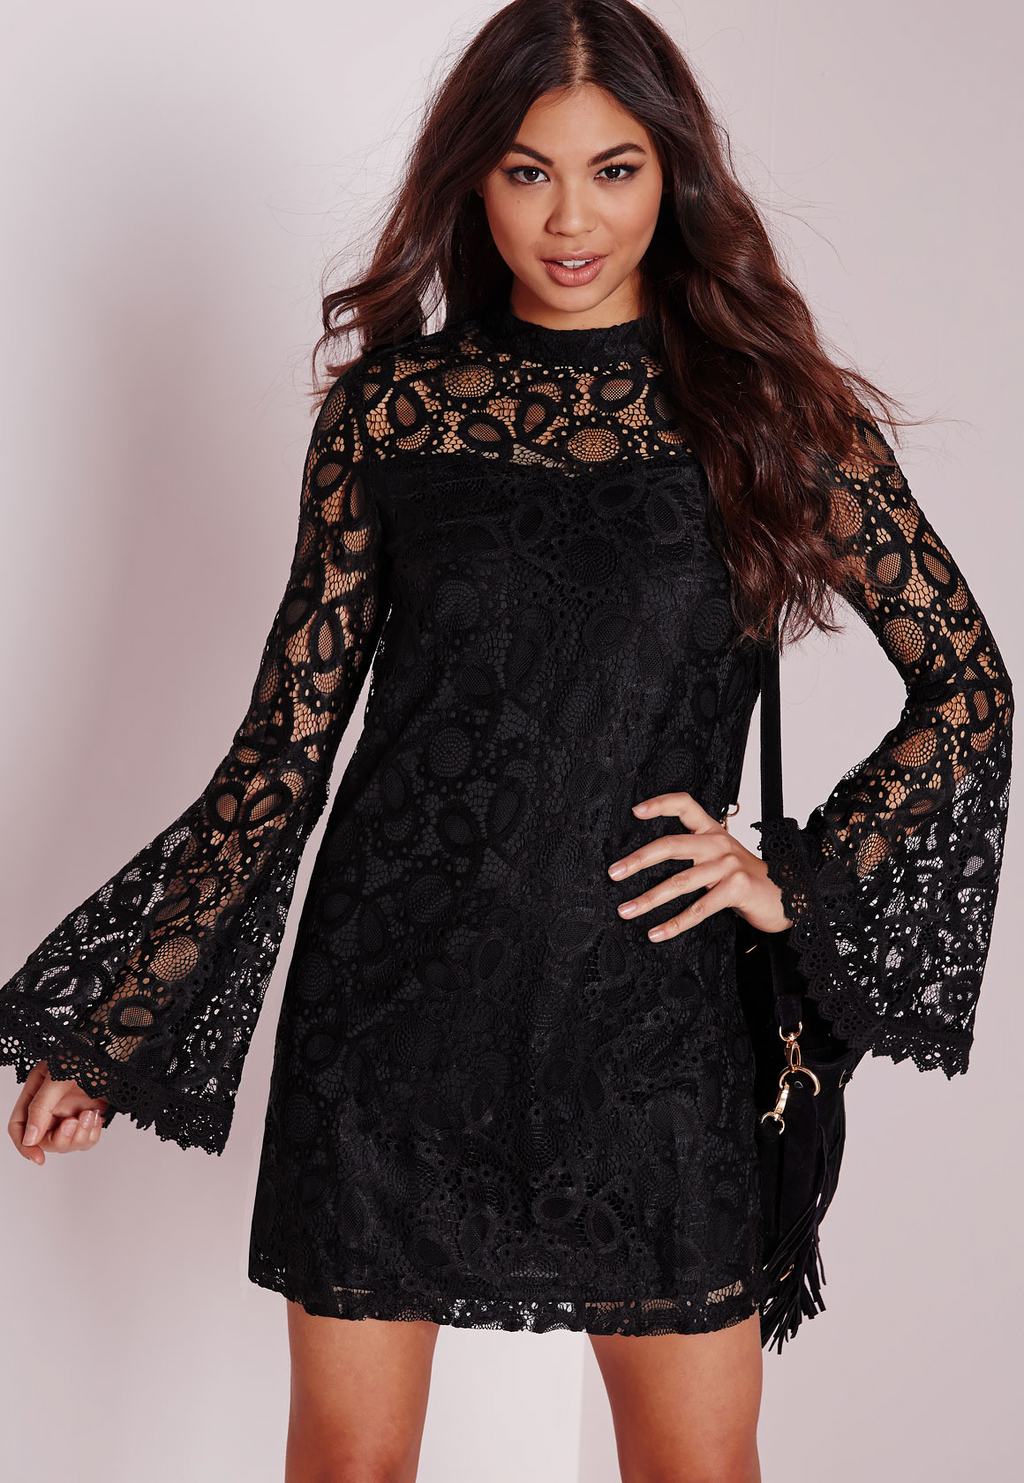 Bell Sleeve Lace Swing Dress Black, Black - style: shift; length: mini; sleeve style: bell sleeve; predominant colour: black; occasions: evening; fit: body skimming; neckline: crew; sleeve length: long sleeve; texture group: lace; pattern type: fabric; pattern size: standard; pattern: patterned/print; season: a/w 2015; wardrobe: event